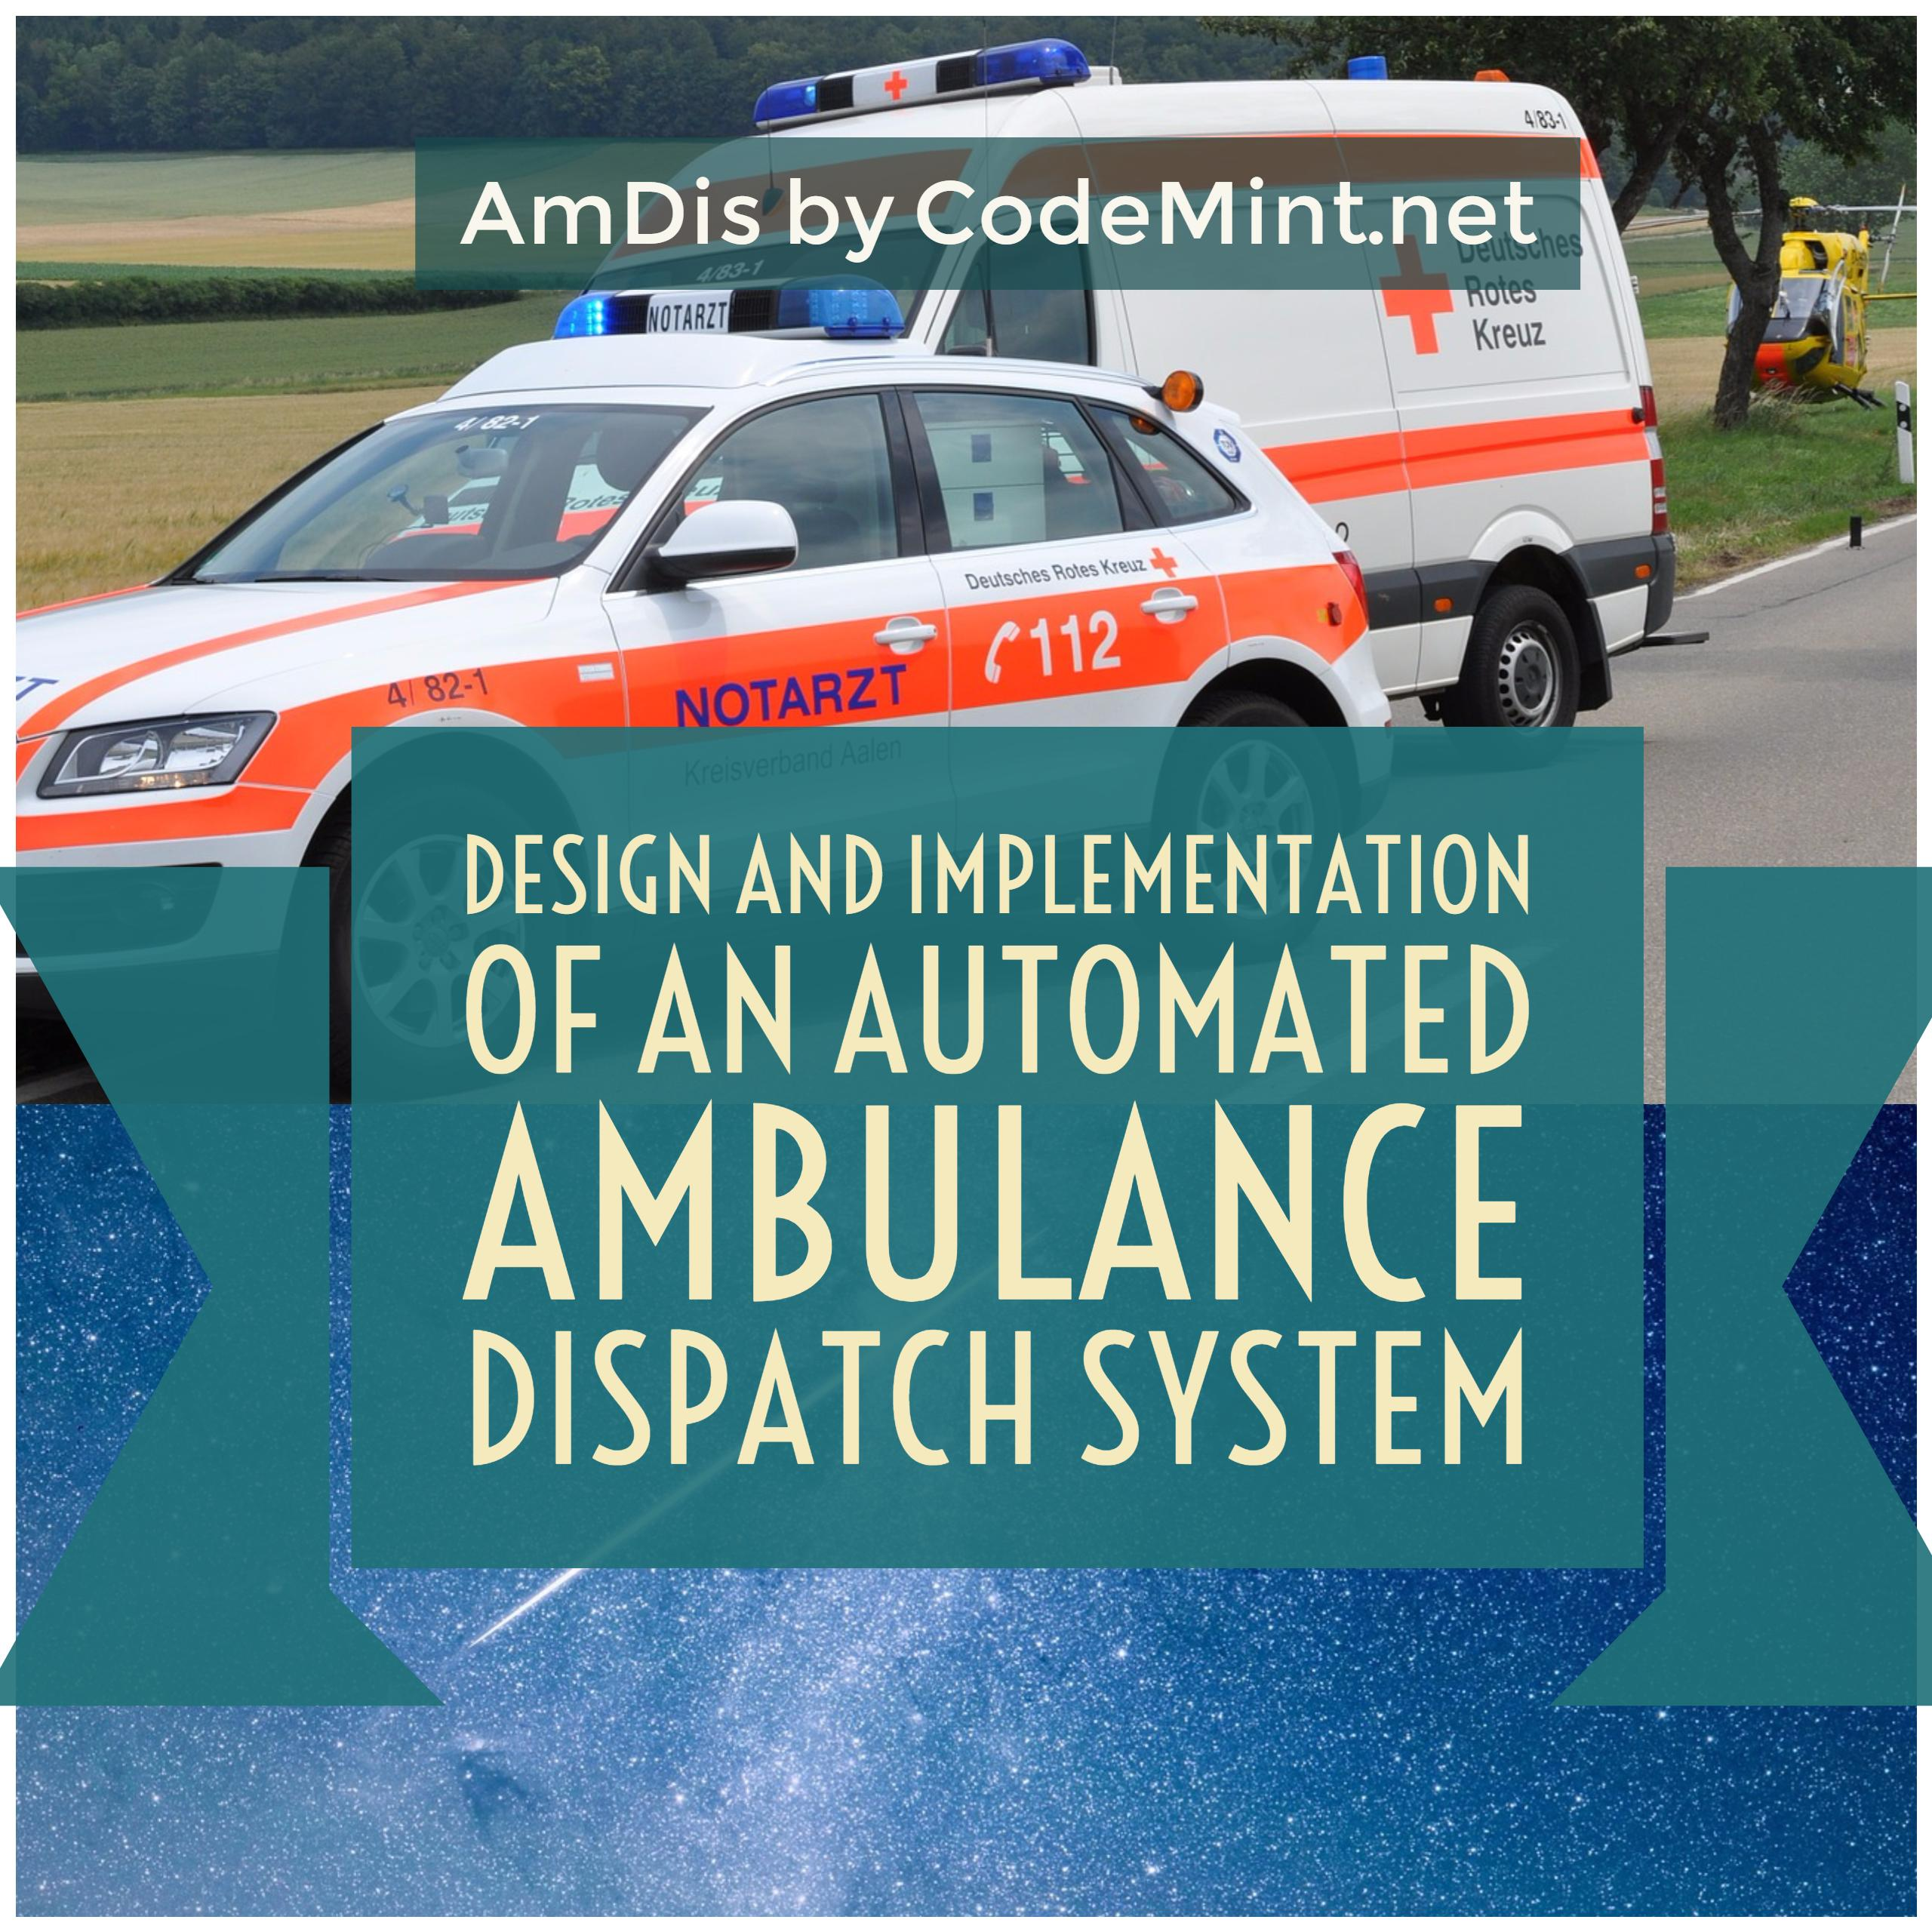 AmDis - Design and Implementation of an Automated Ambulance Dispatch System - CodeMint Mint for Sale